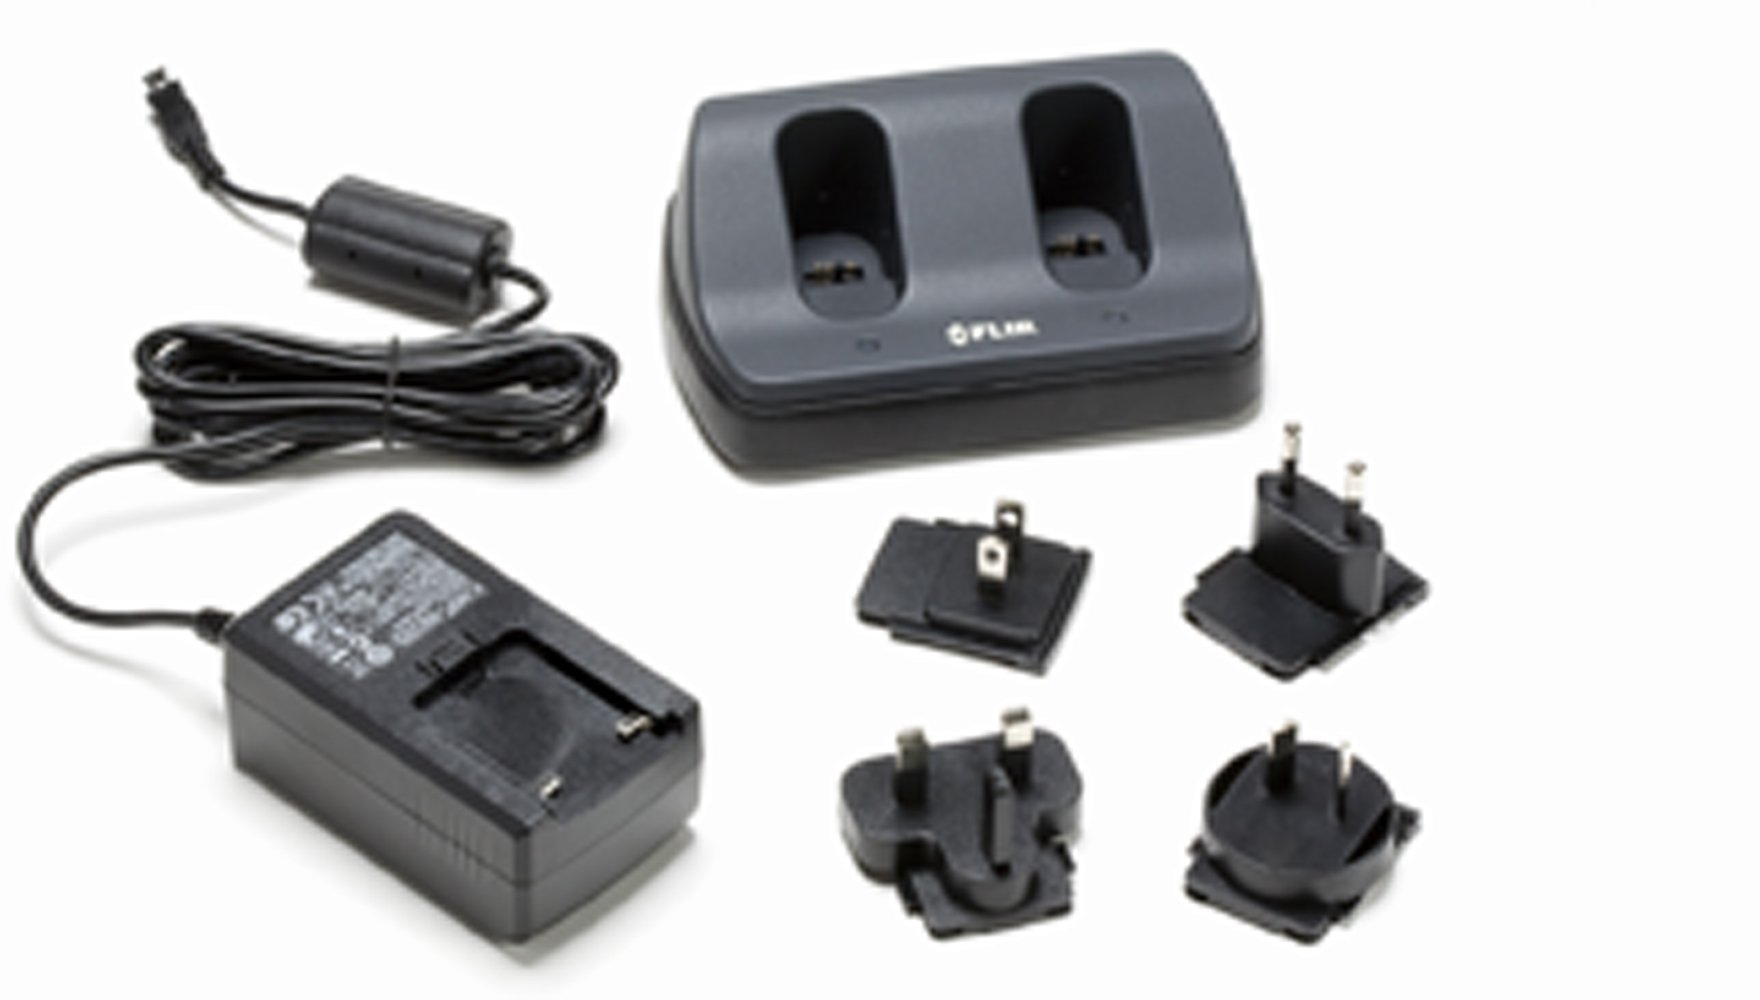 FLIR Stand-Alone 2-Bay Battery Charger for E40, E50, E60 Thermal Cameras by FLIR